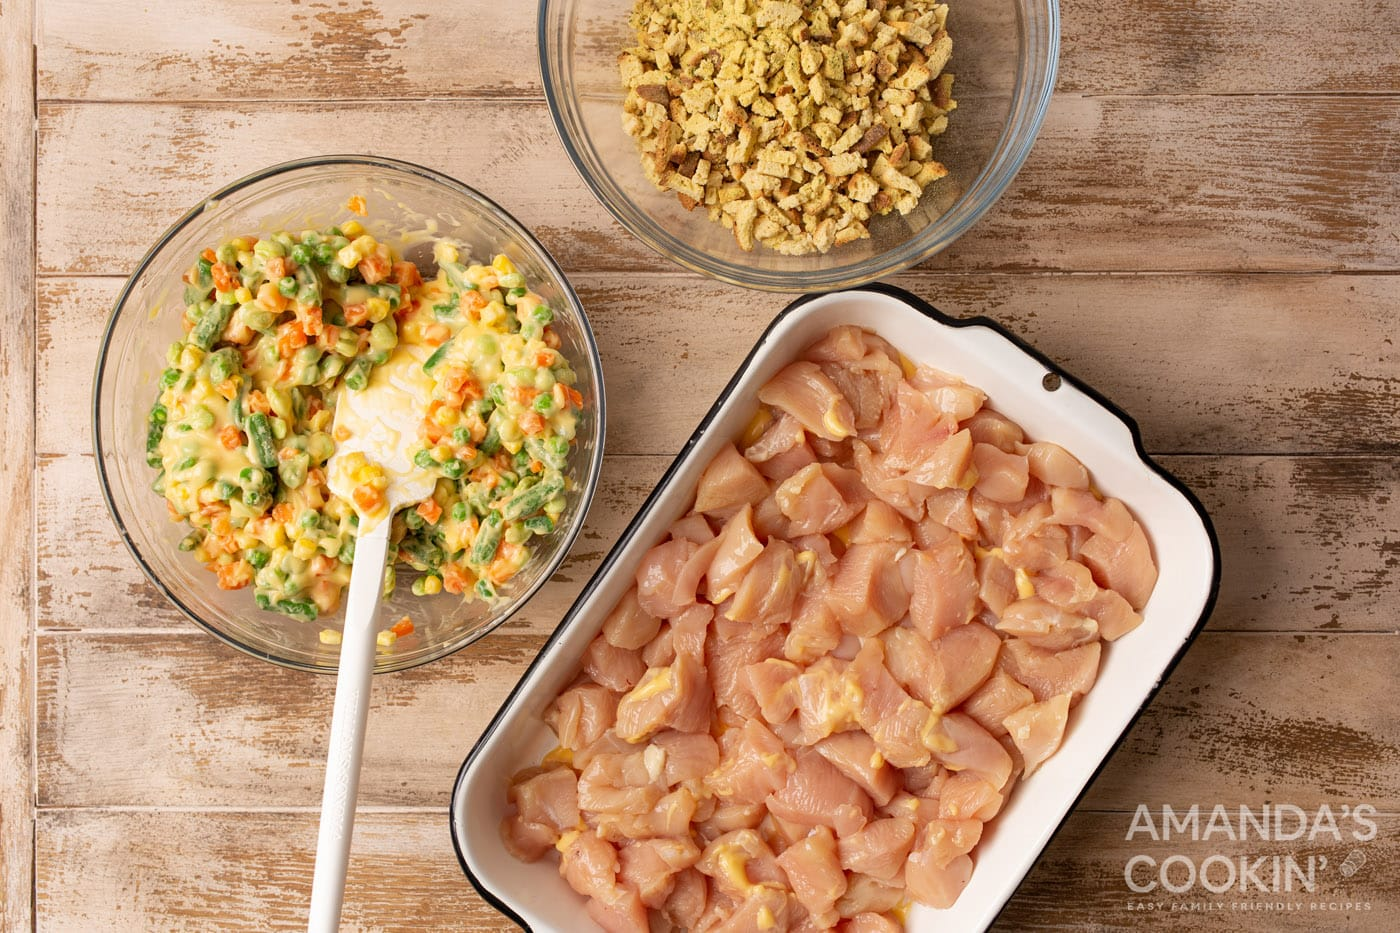 diced chicken in a casserole dish with veggies and stuffing